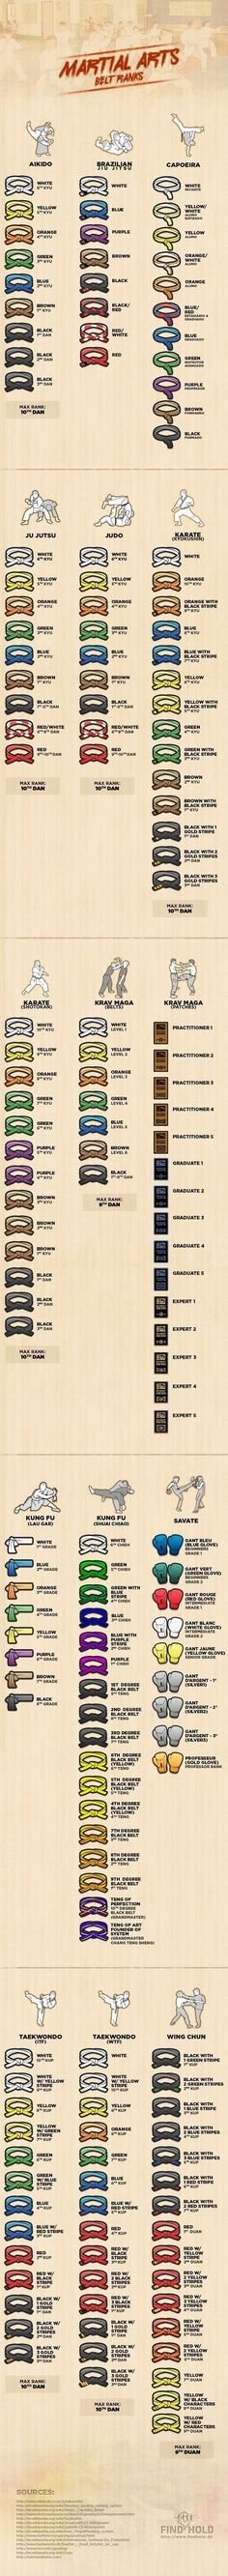 15 Martial Arts Belt Ranks Infographic | MMA Verse. Hm not sure about some of these.